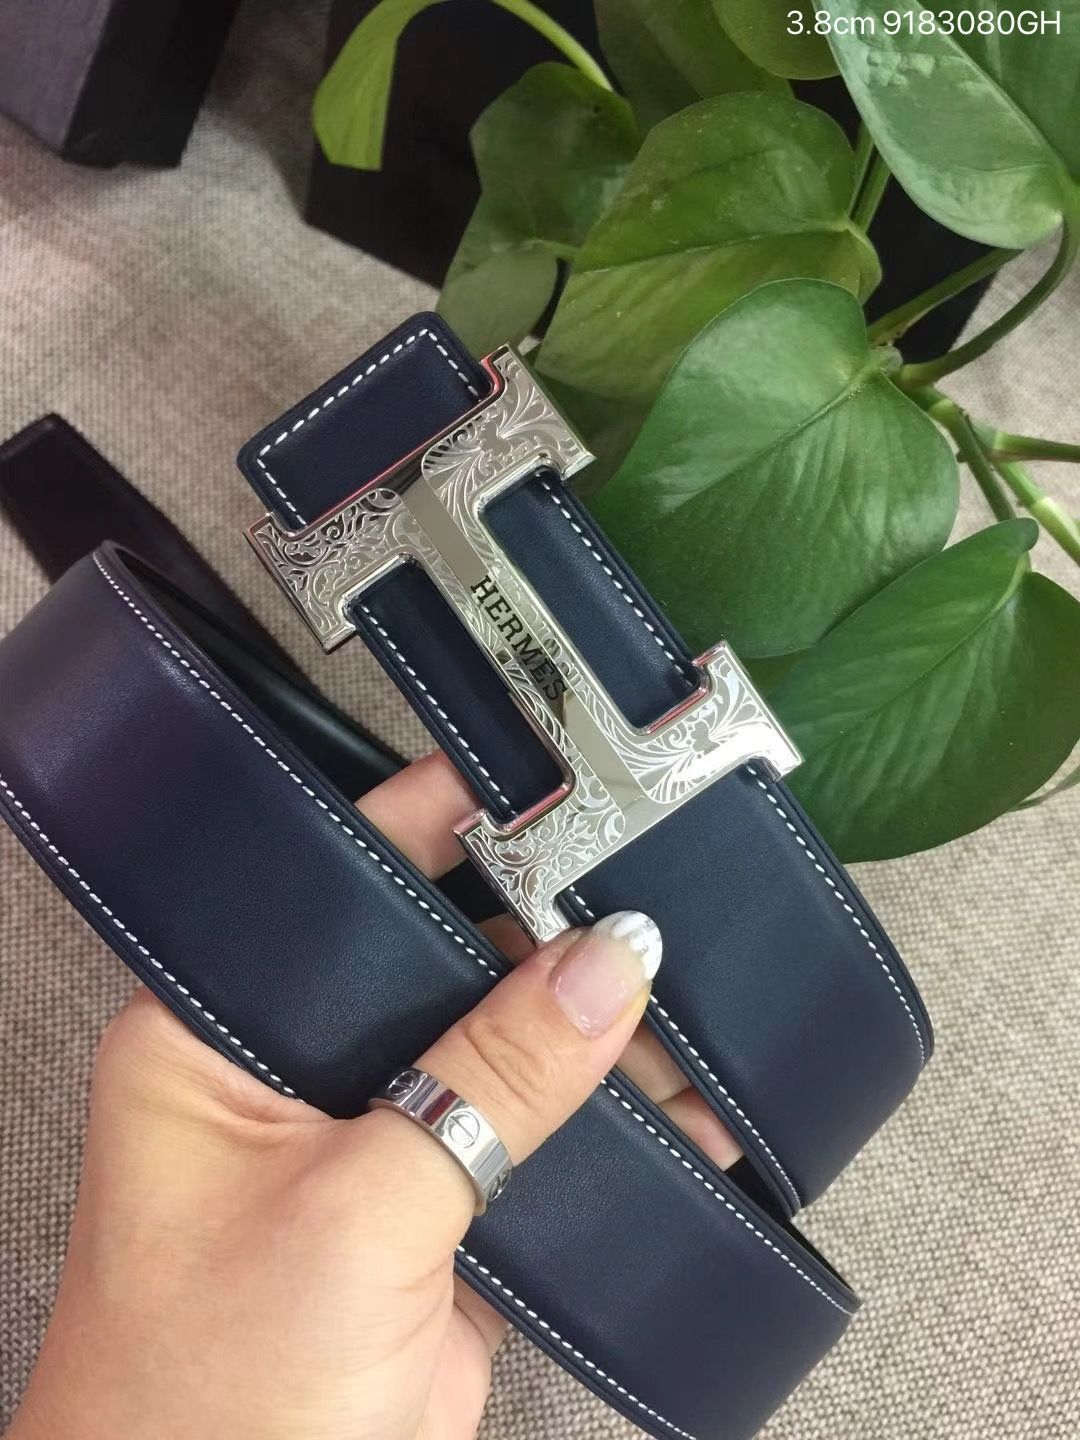 7574821c6c07 Hermes woman man leather belt